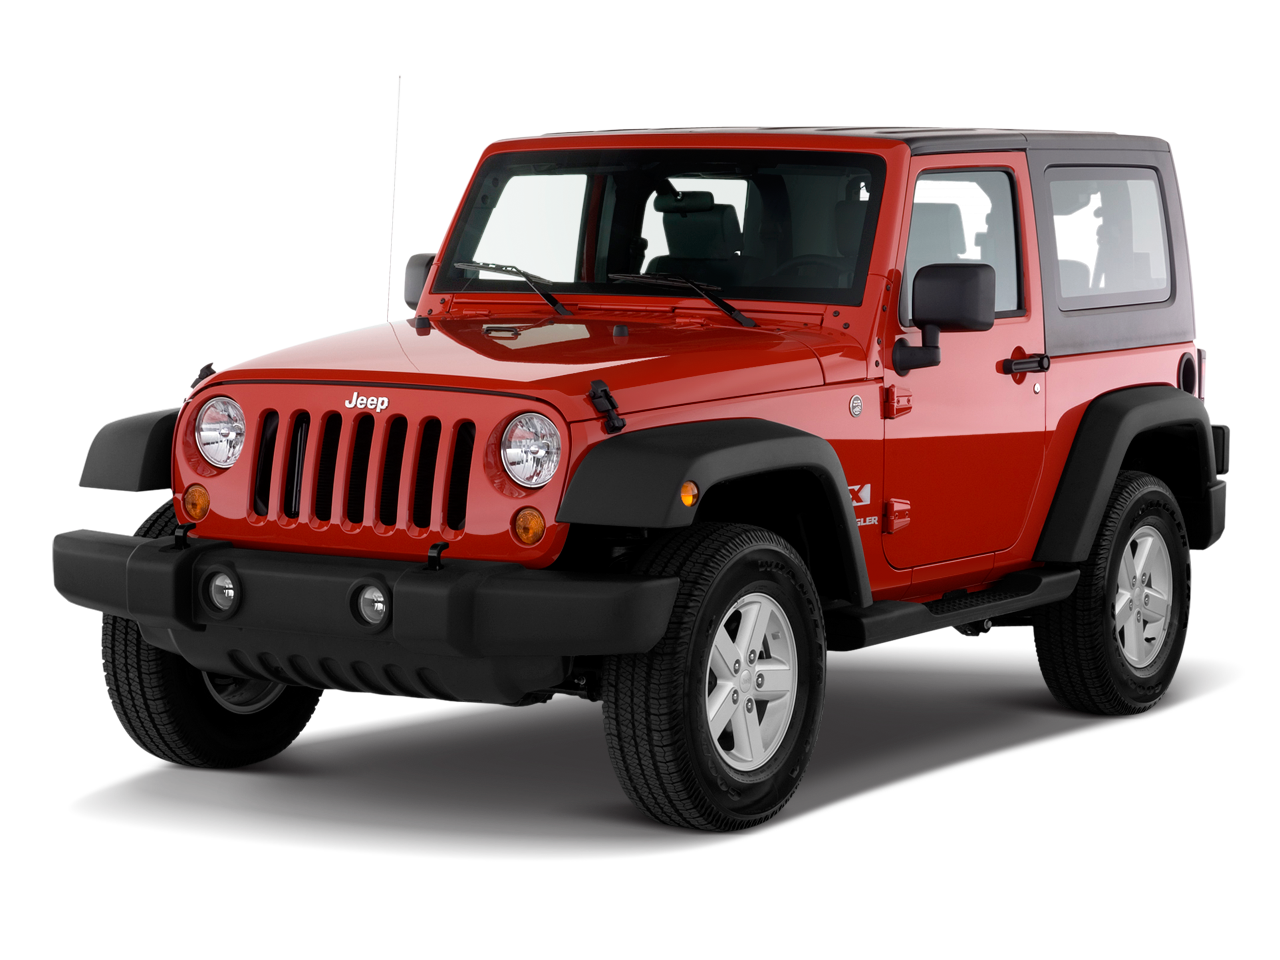 Jeep tj png. Used wrangler cherner brothers